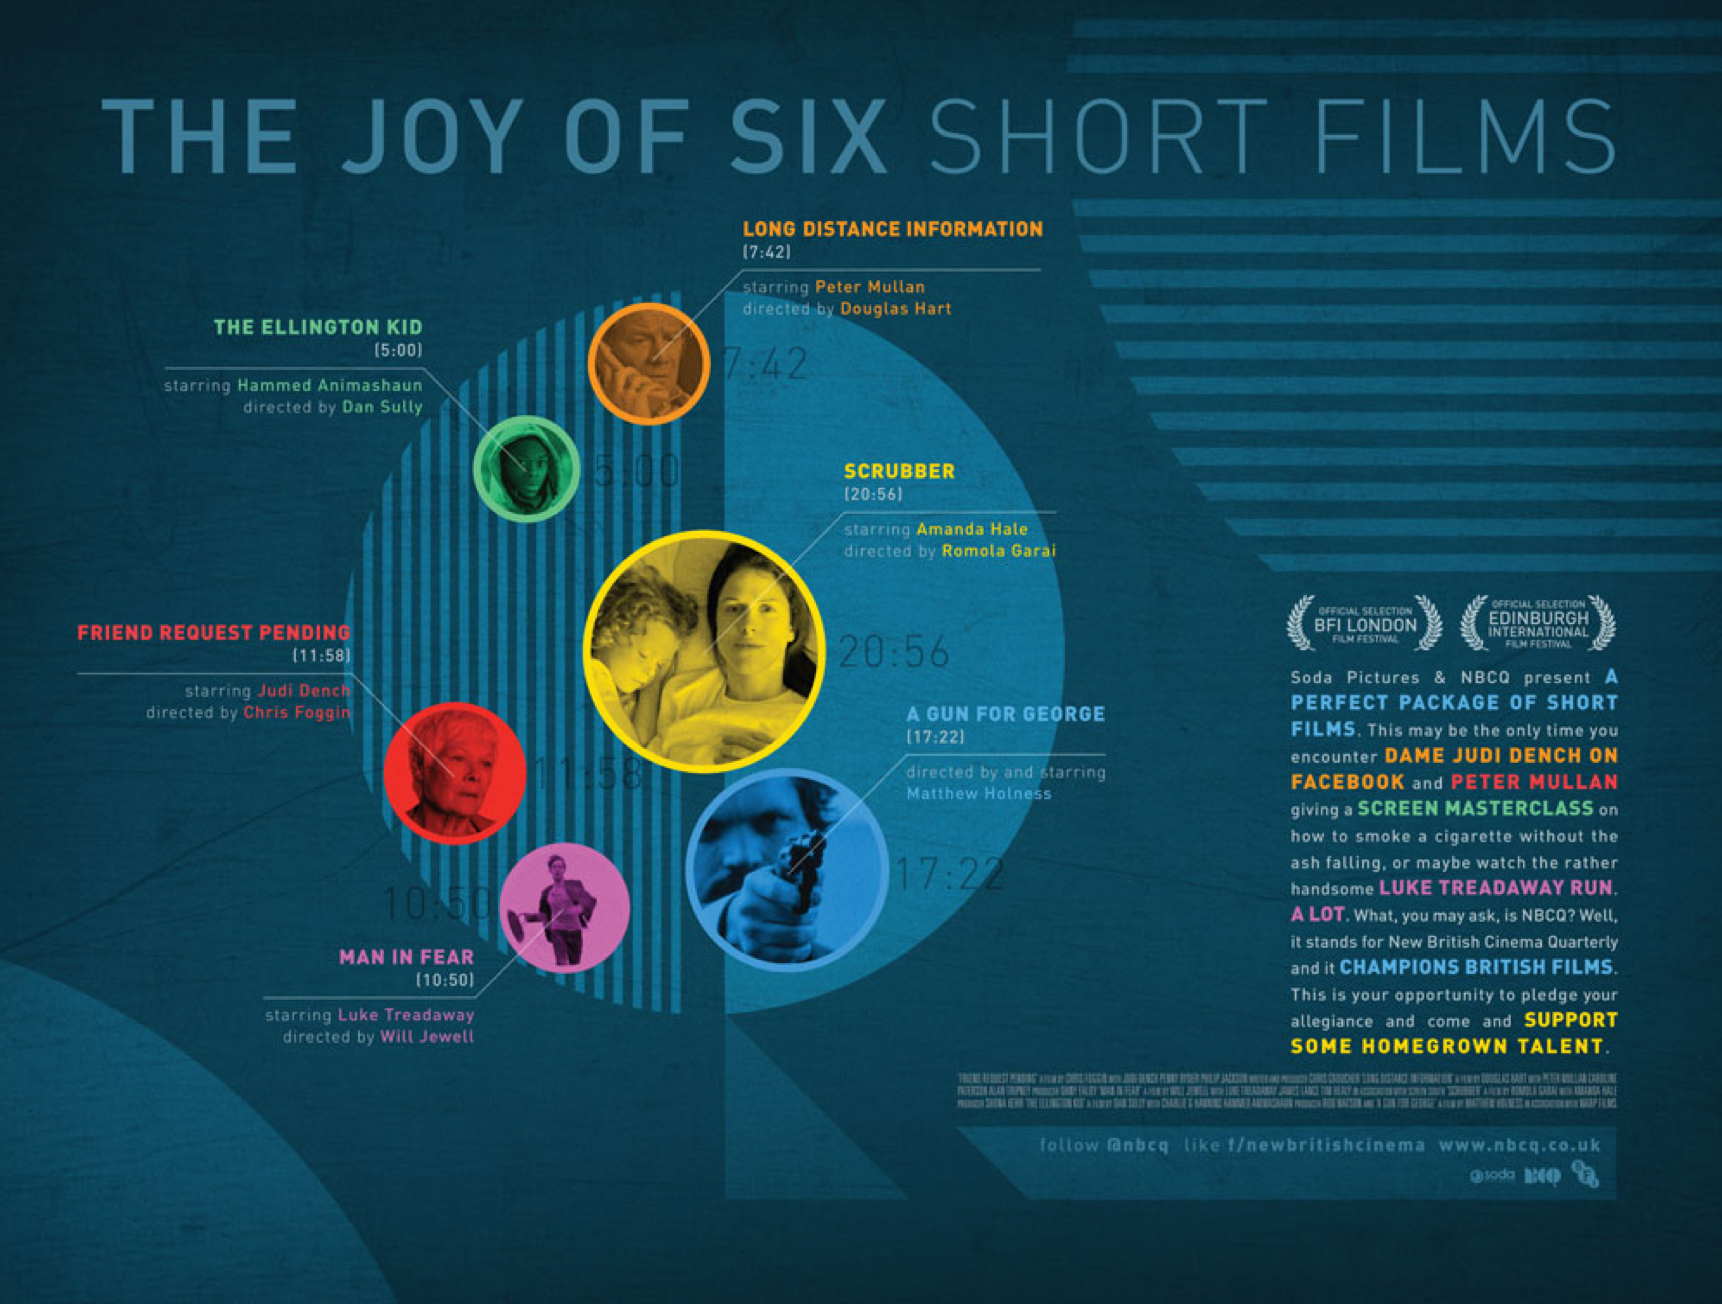 Joy of Six* Film Poster released by Soda Pictures.